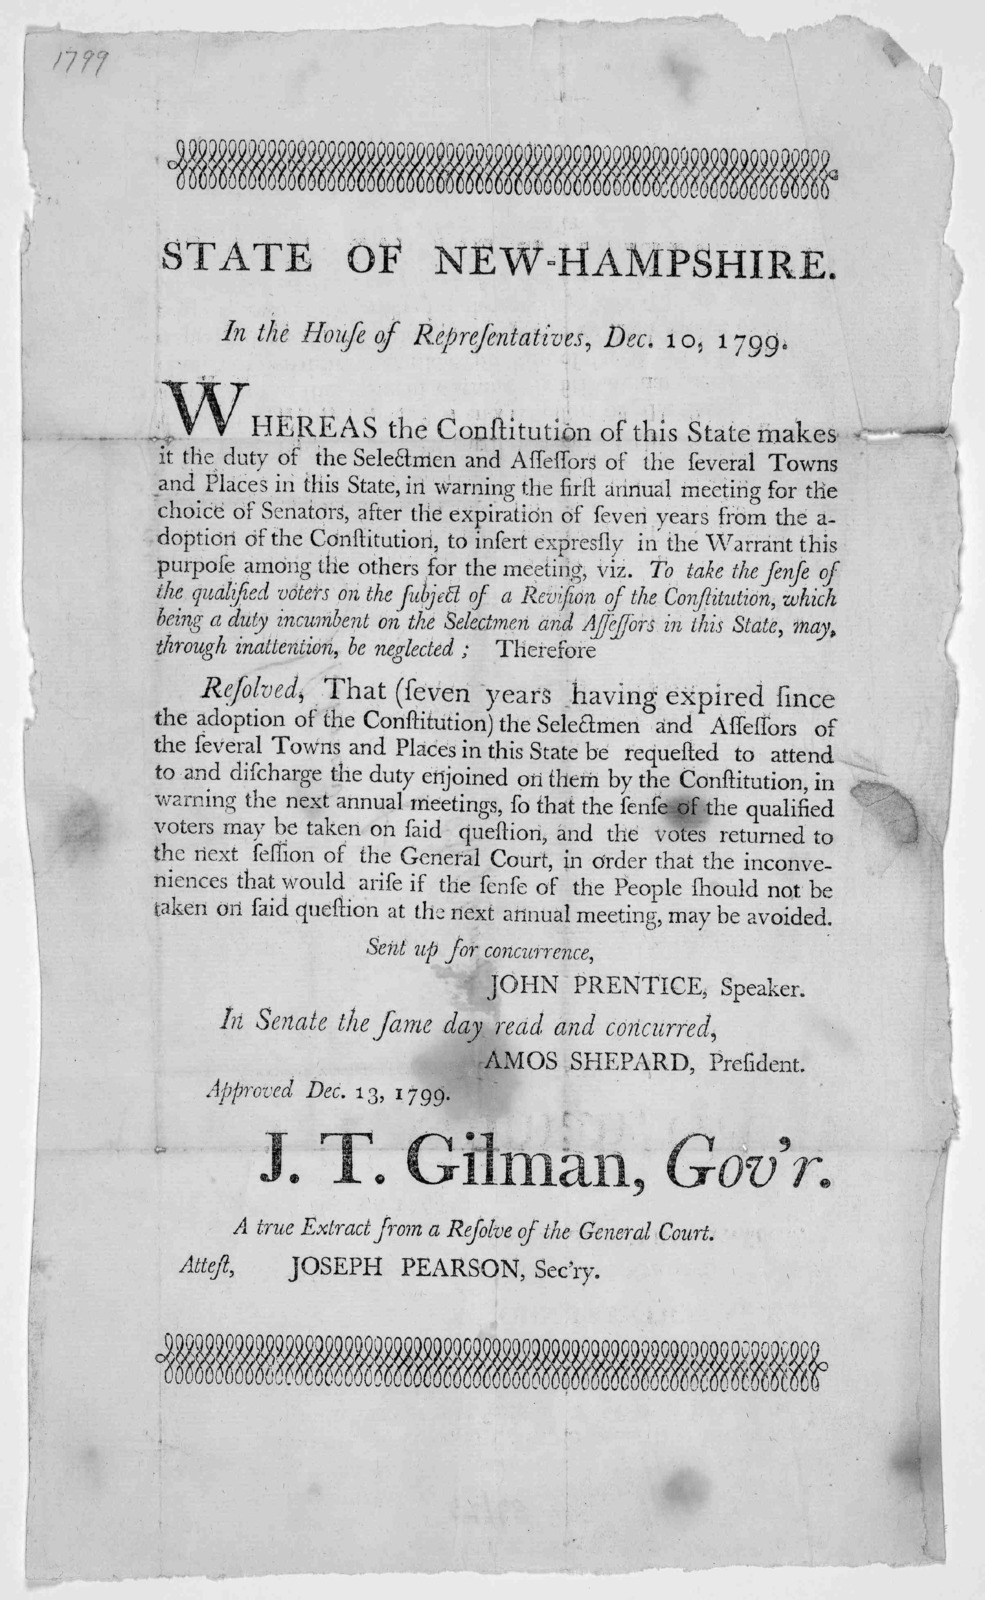 State of New Hampshire. In the House of representatives, Dec. 10, 1799. Whereas the constitution of this state makes it the duty of the selectmen and assessors of the several towns and places in this State, in warning the first annual meeting fo